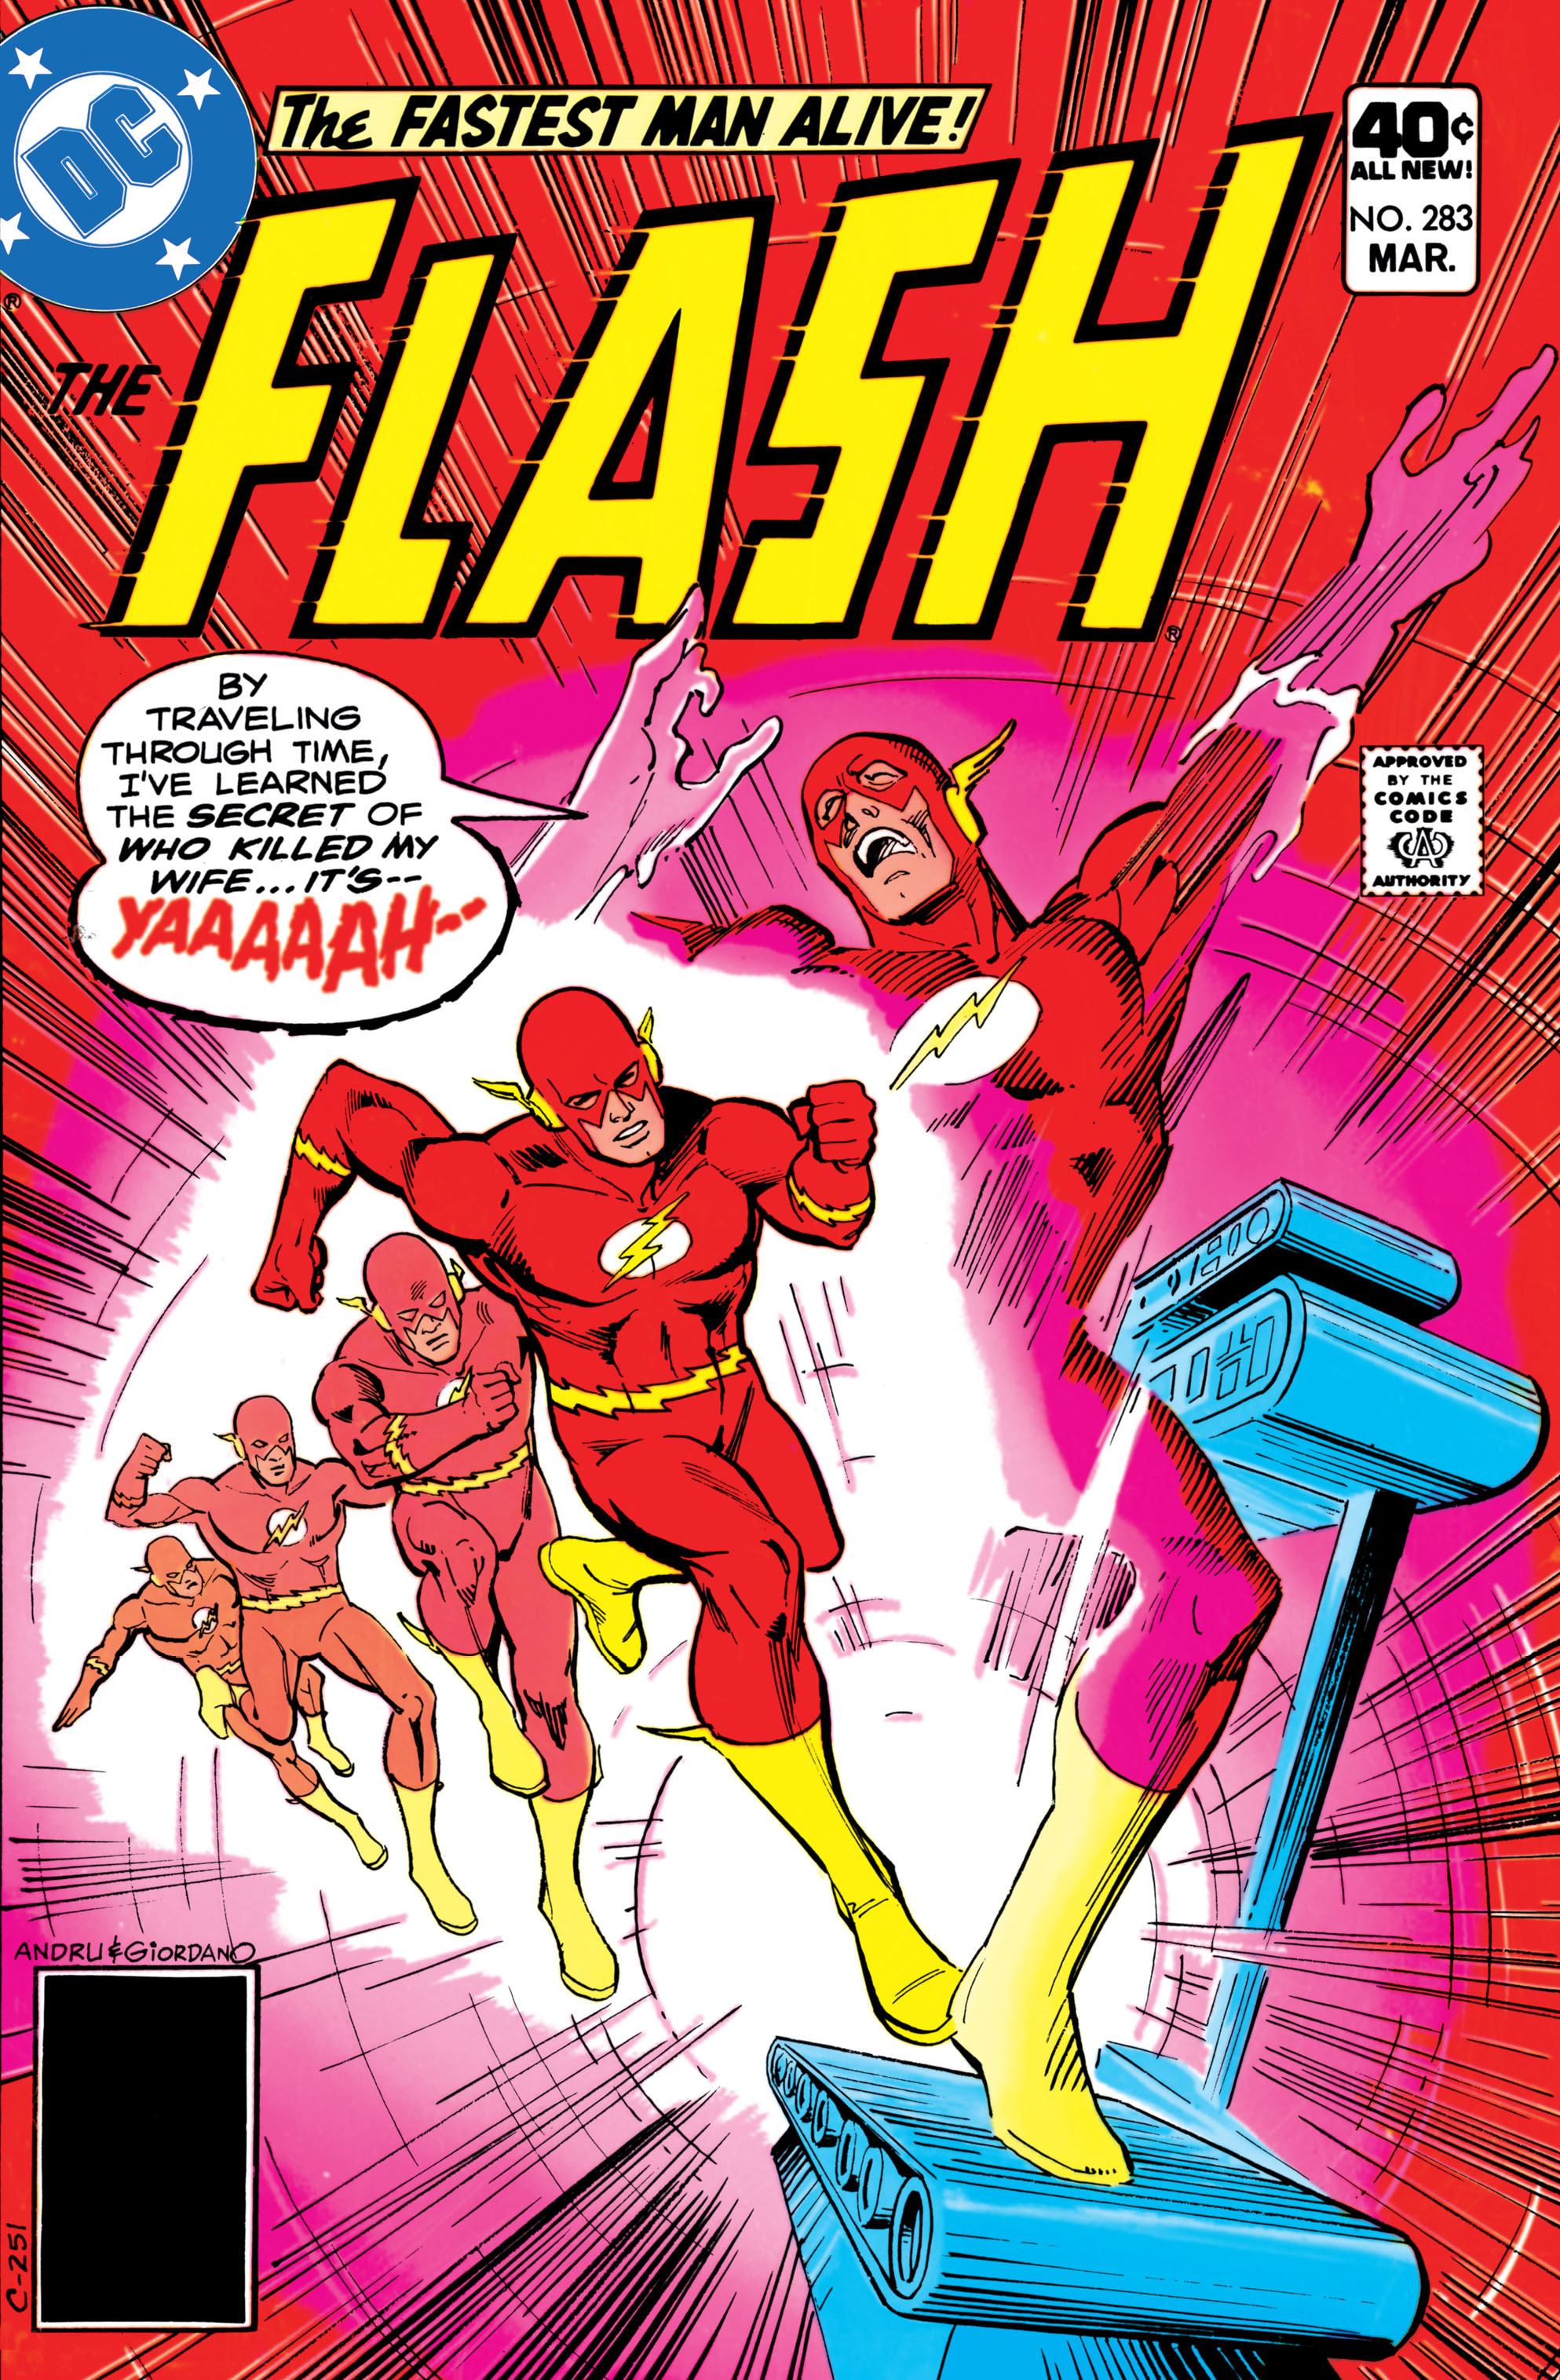 The Flash (1959) 283 Page 1